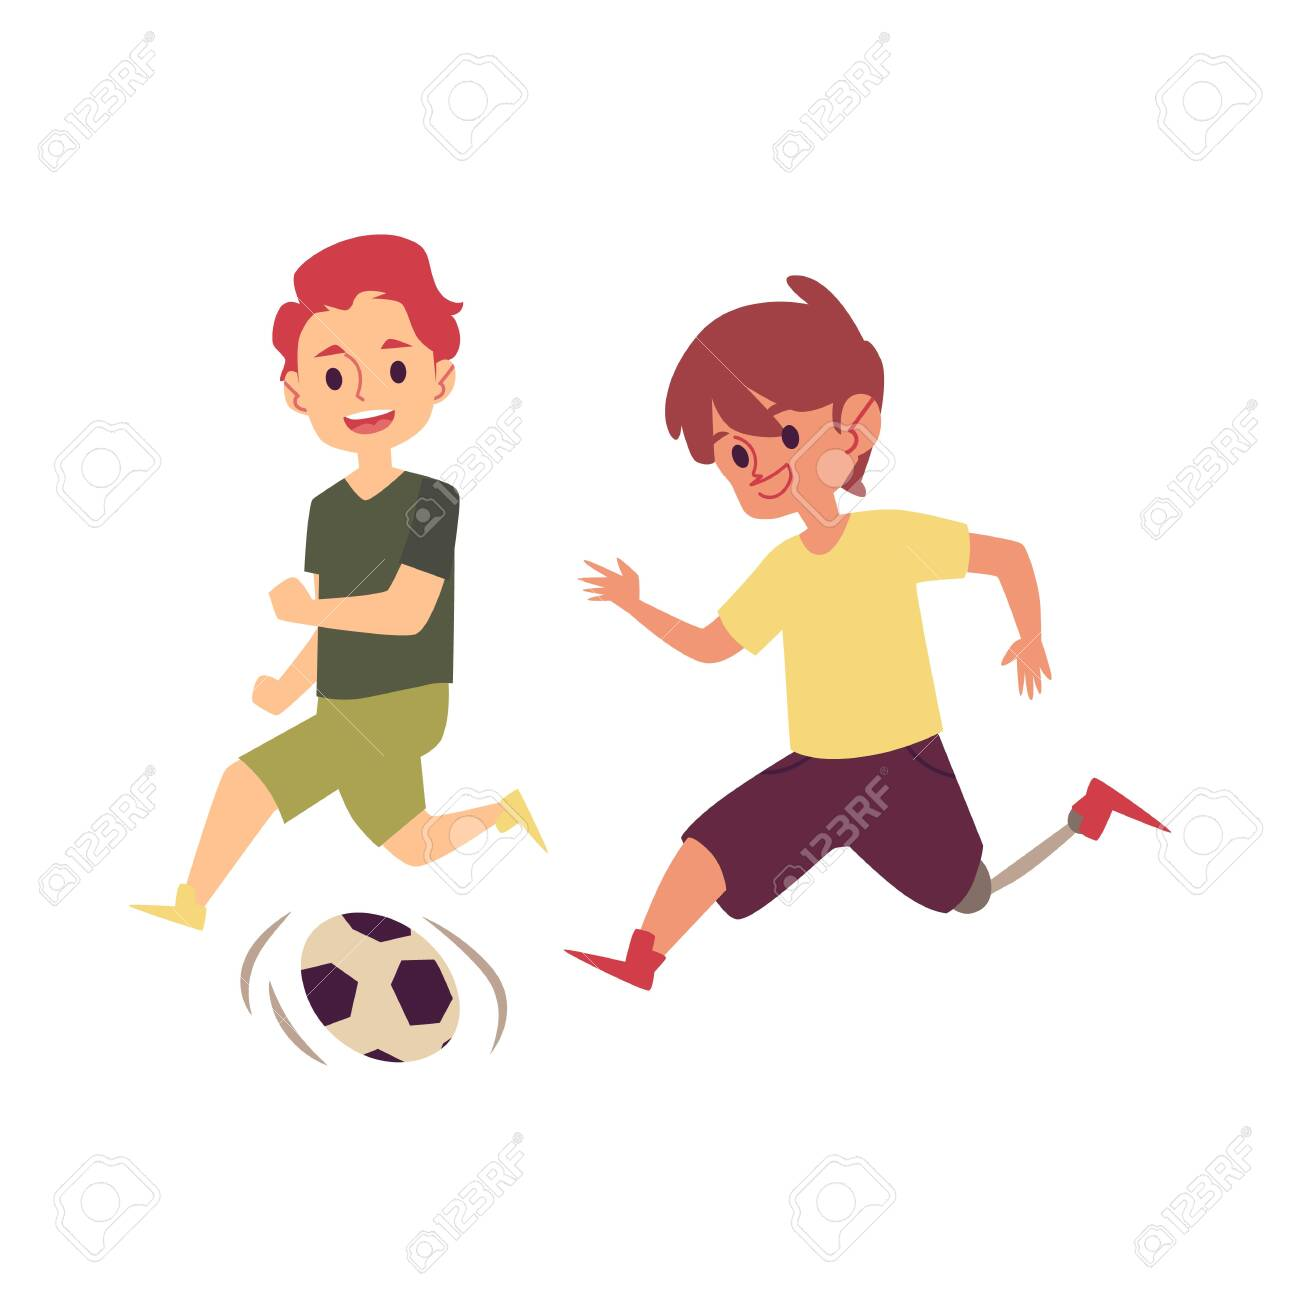 Disabled child playing soccer game with friend, happy cartoon boy with prosthetic leg kicking a football to score goal. Kid with disability running with a ball - isolated flat vector illustration - 128170955